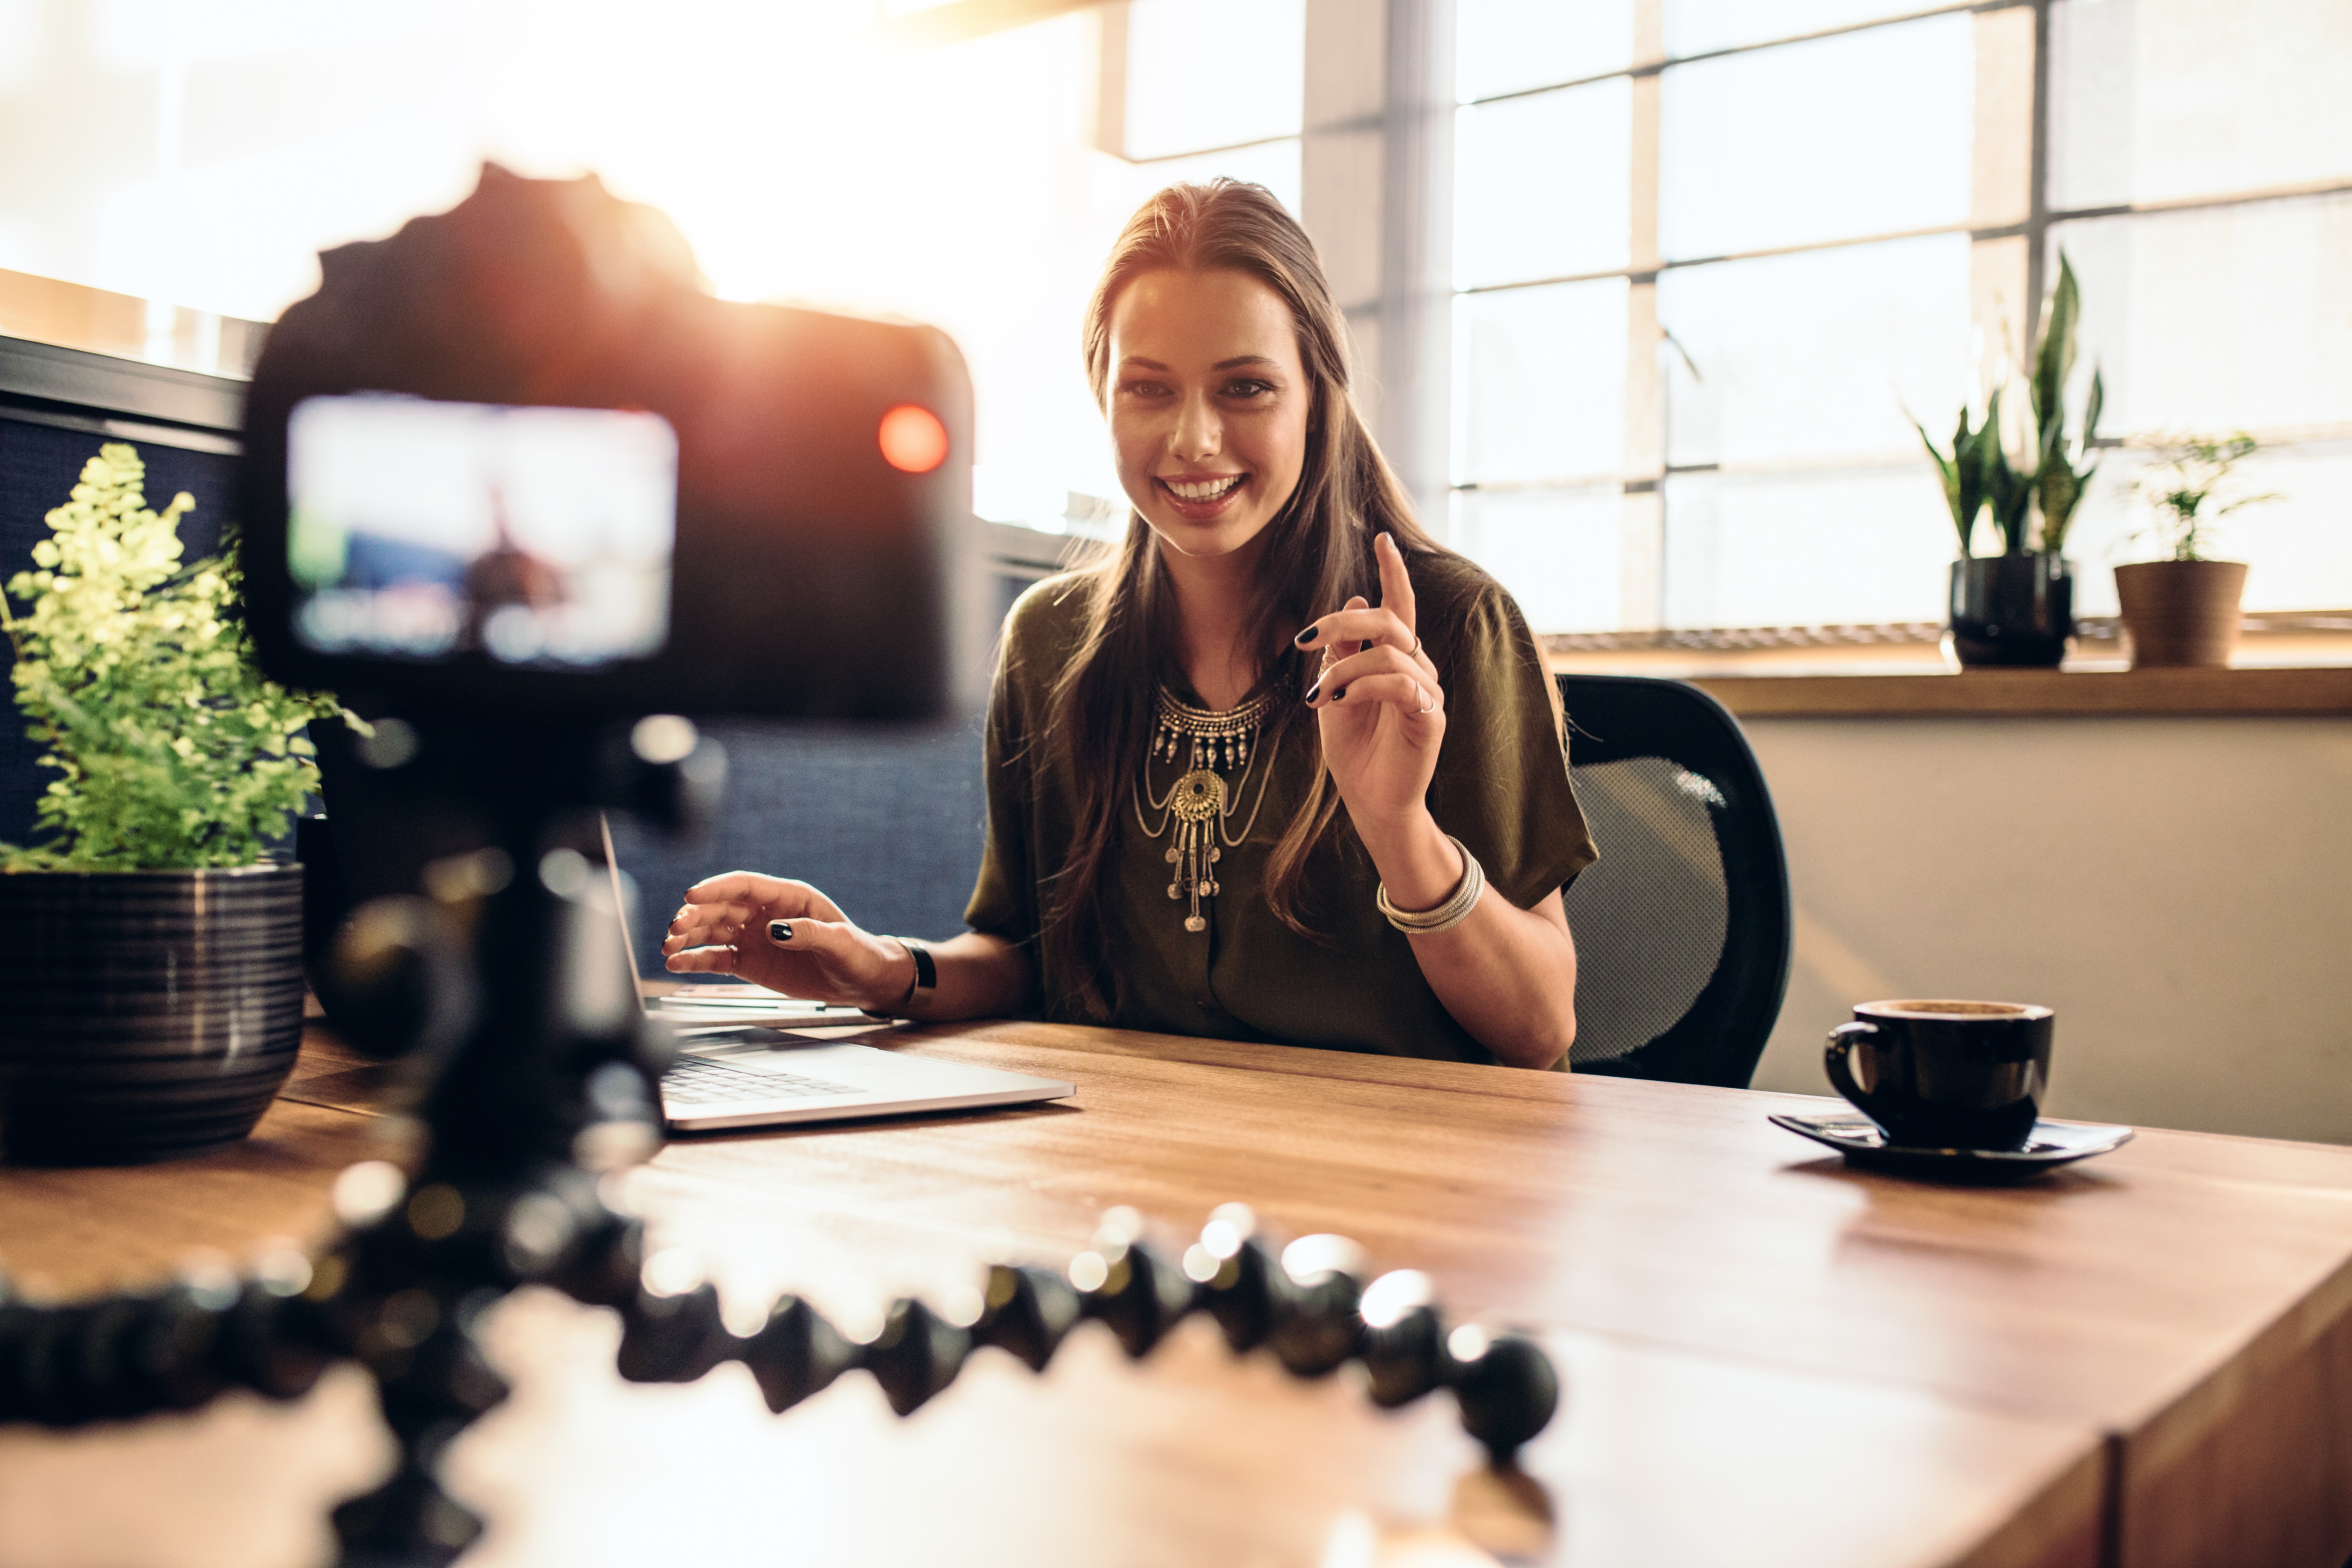 Video Marketing: Why It's Key in Your Facebook Strategy